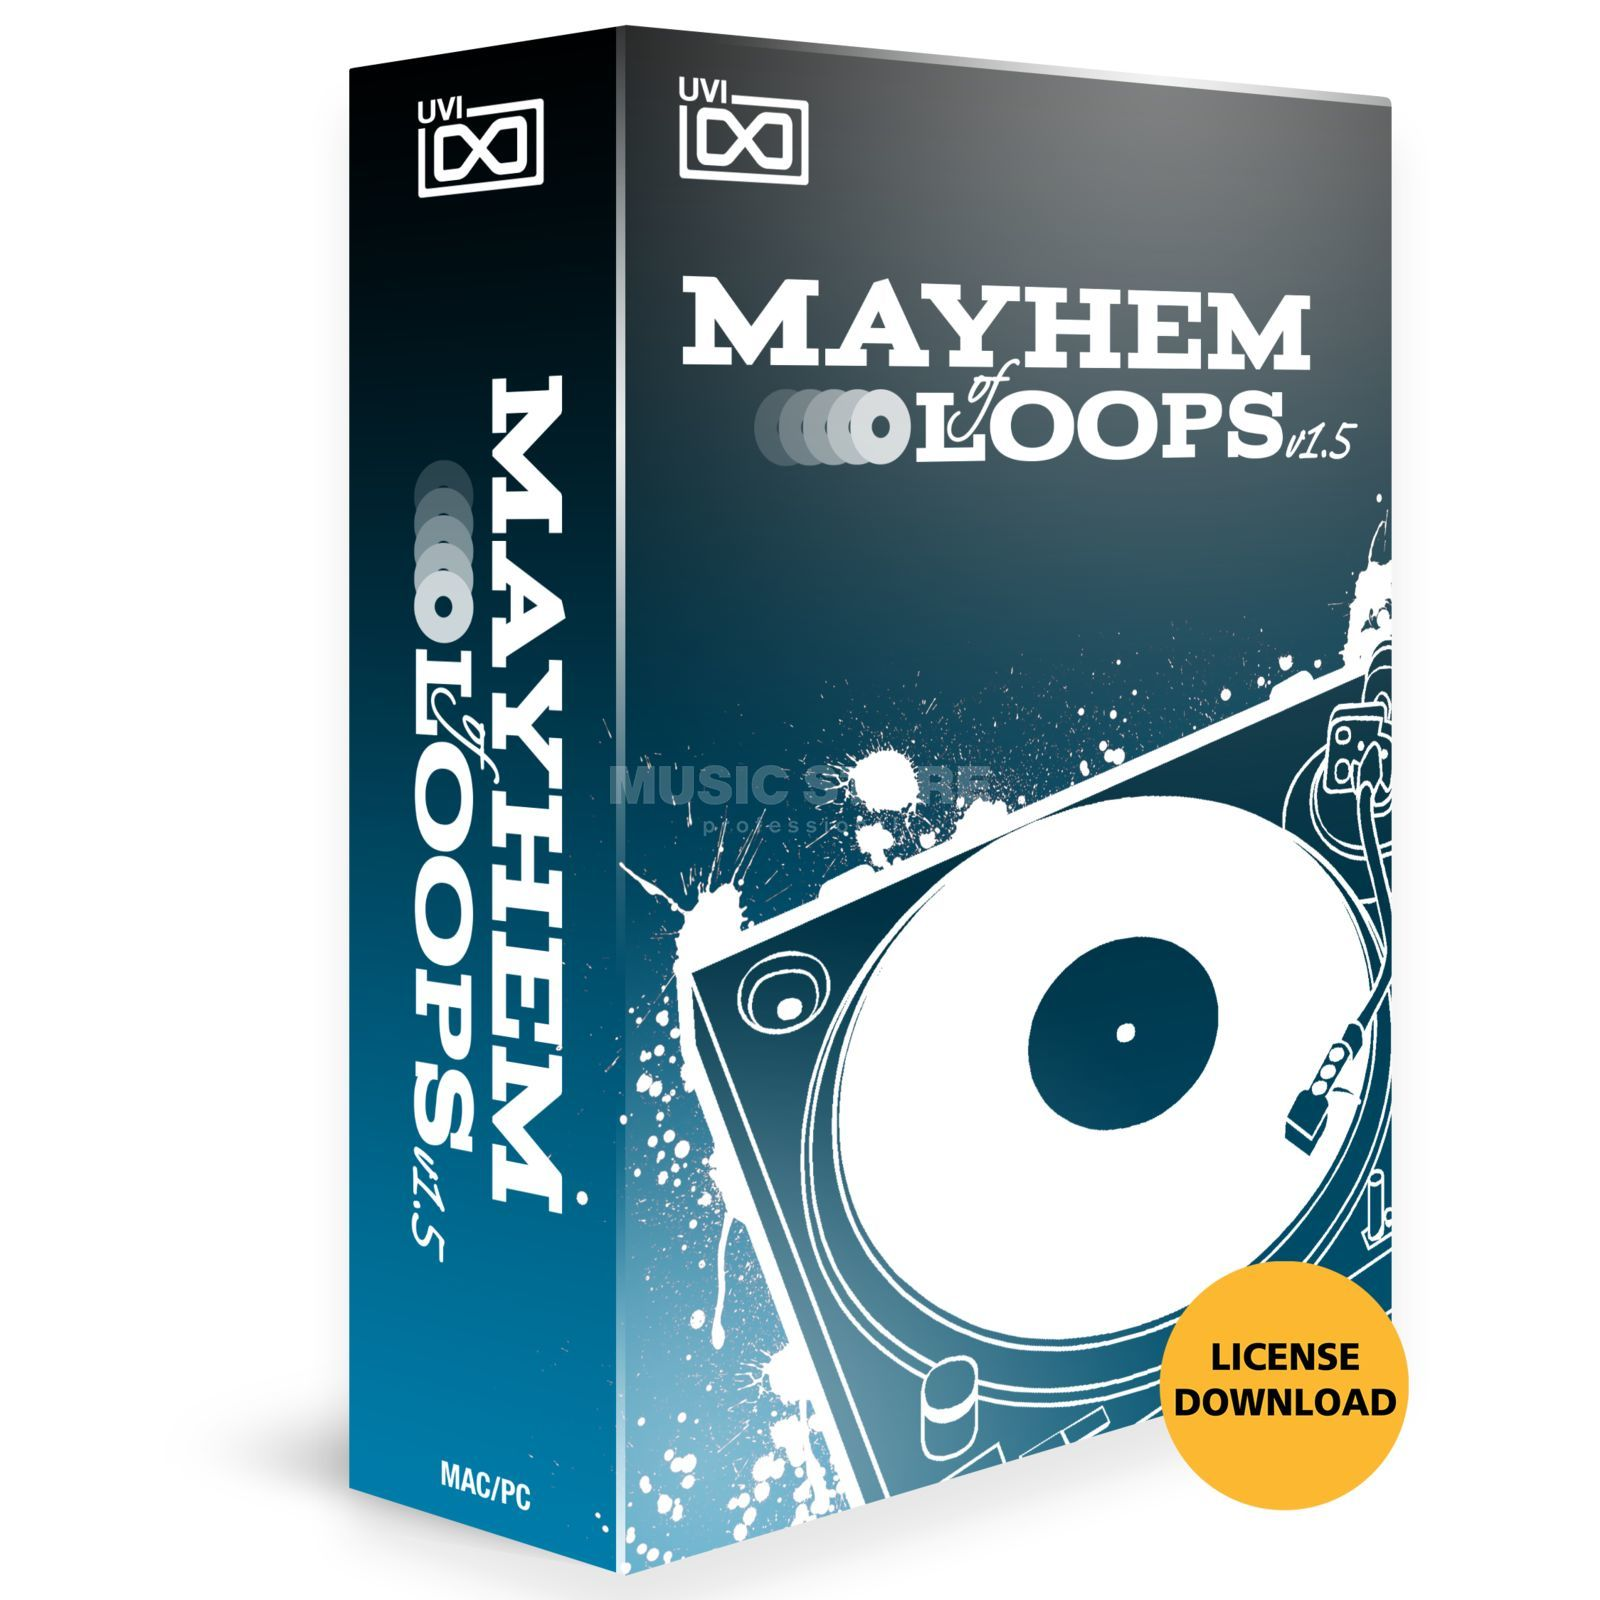 UVI Mayhem of Loops V1.5 (Lizenz) Software Instrument Produktbild